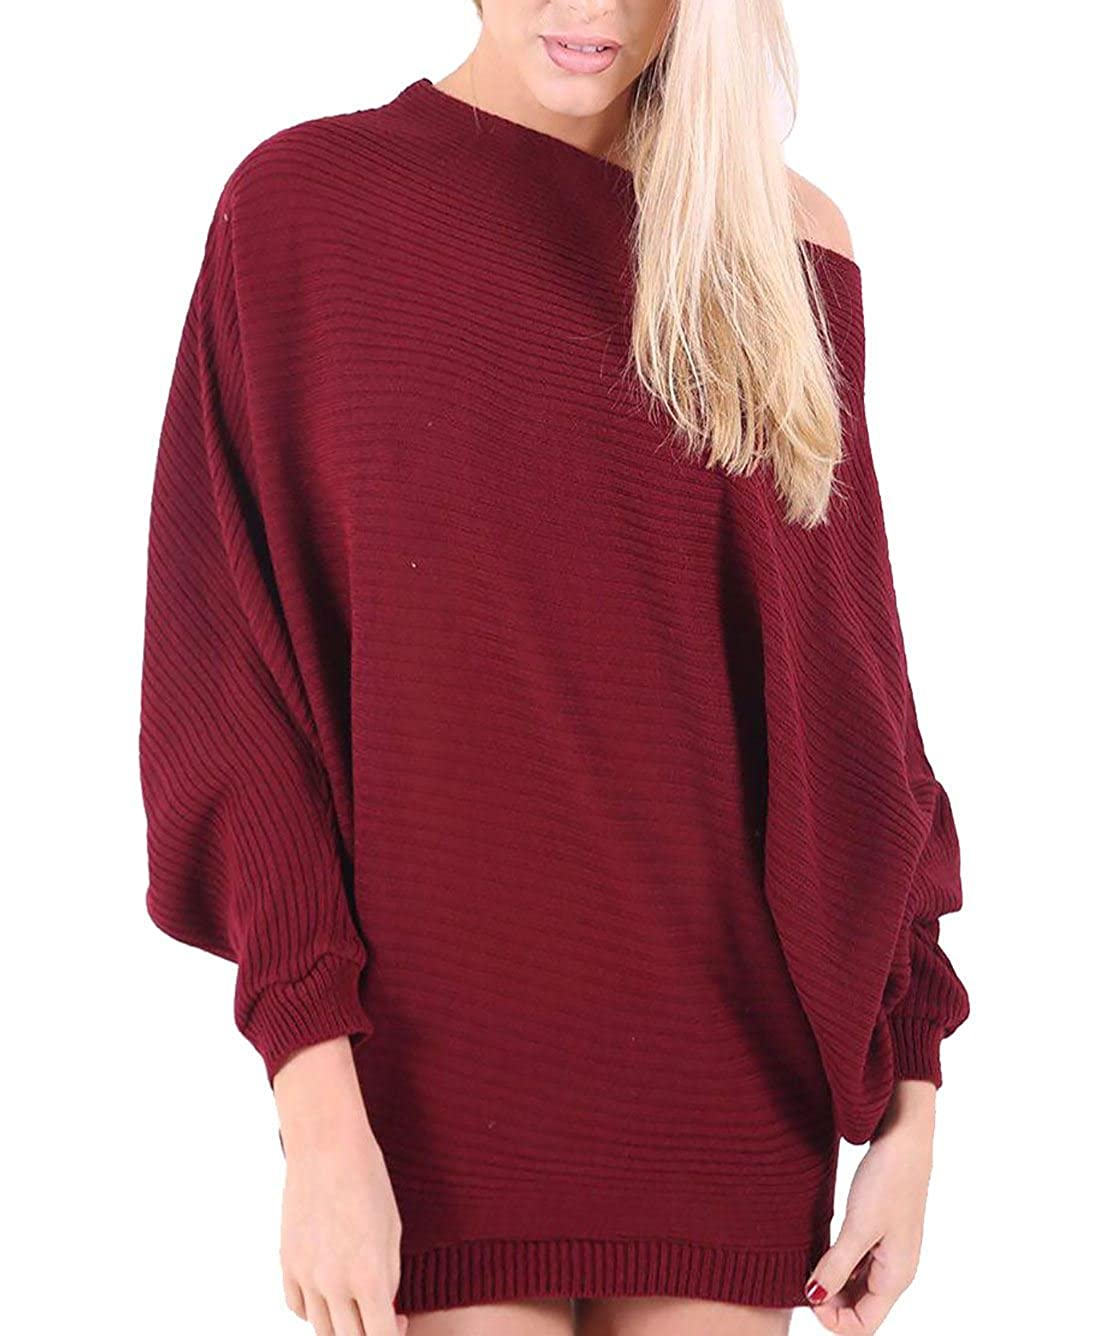 Rimi Hanger Womens Long Sleeve Off Shoulder Knitted Batwing Top (S-M-L)